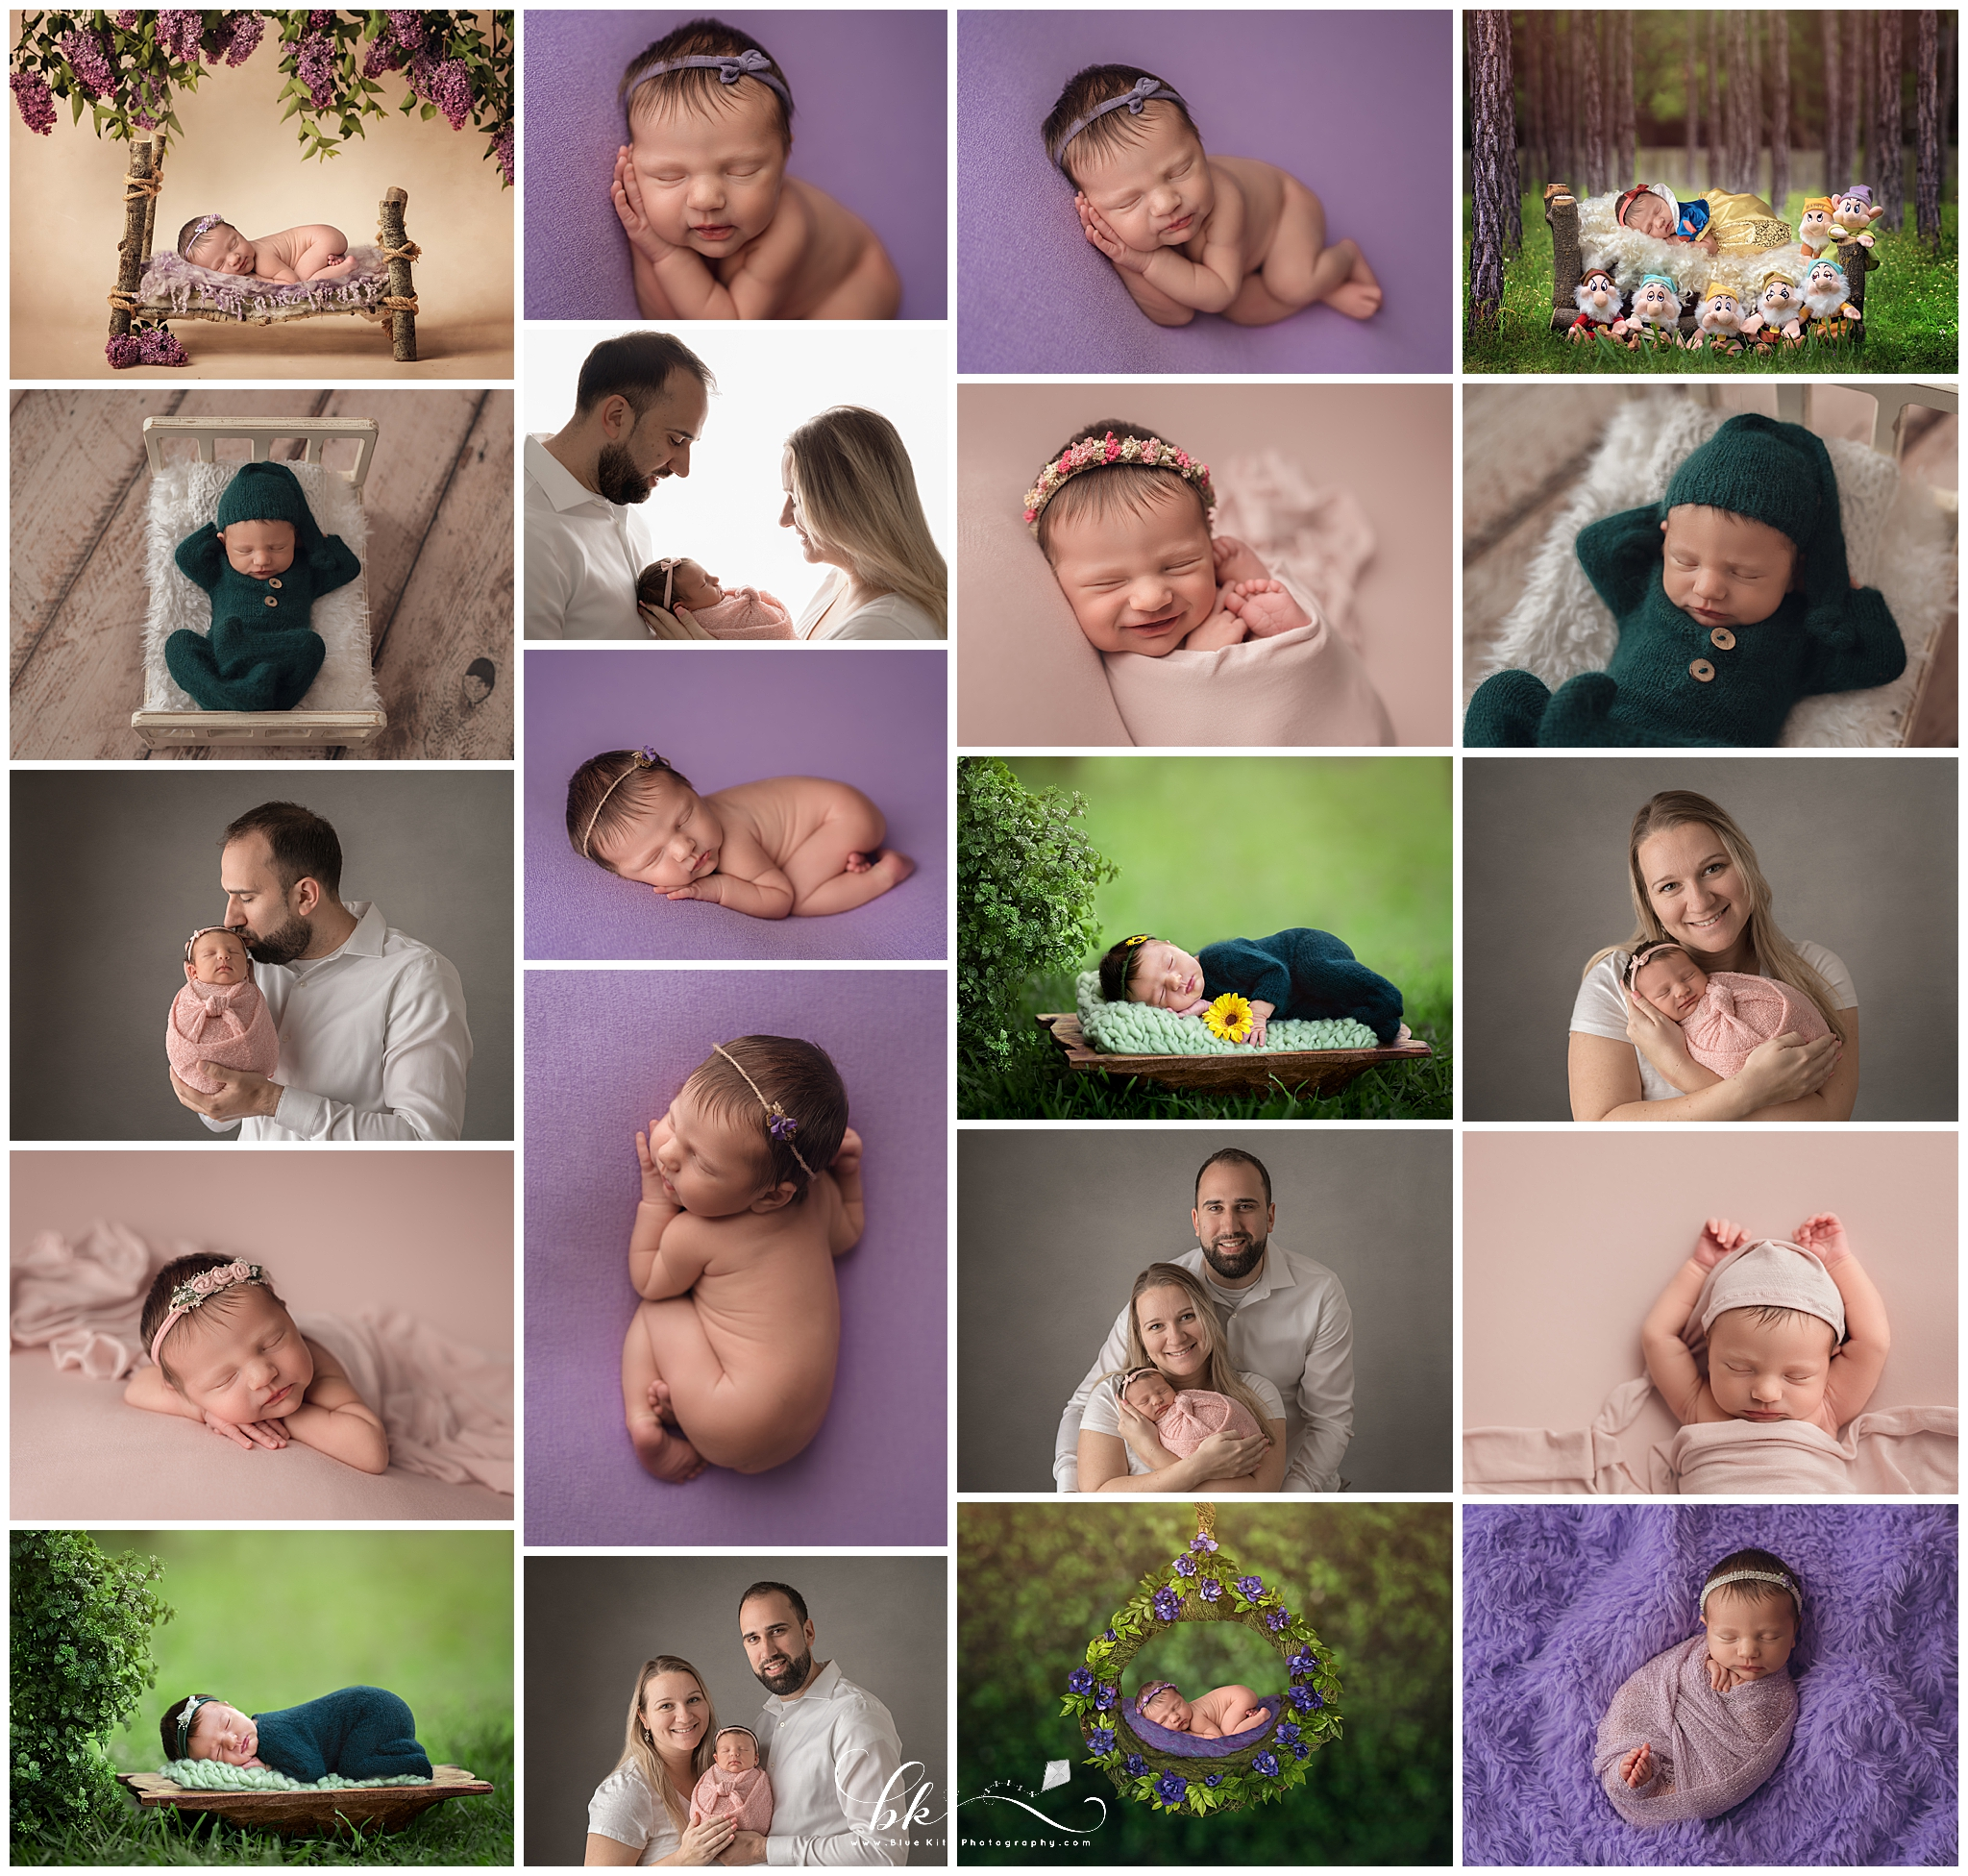 Newborn photographer in Boca Raton, in Parkland, in Coral Springs, in Deerfield, in Delray Beach, in Boynton, in Wellington, in Lake Worth, in West Palm Beach, in Pompano.